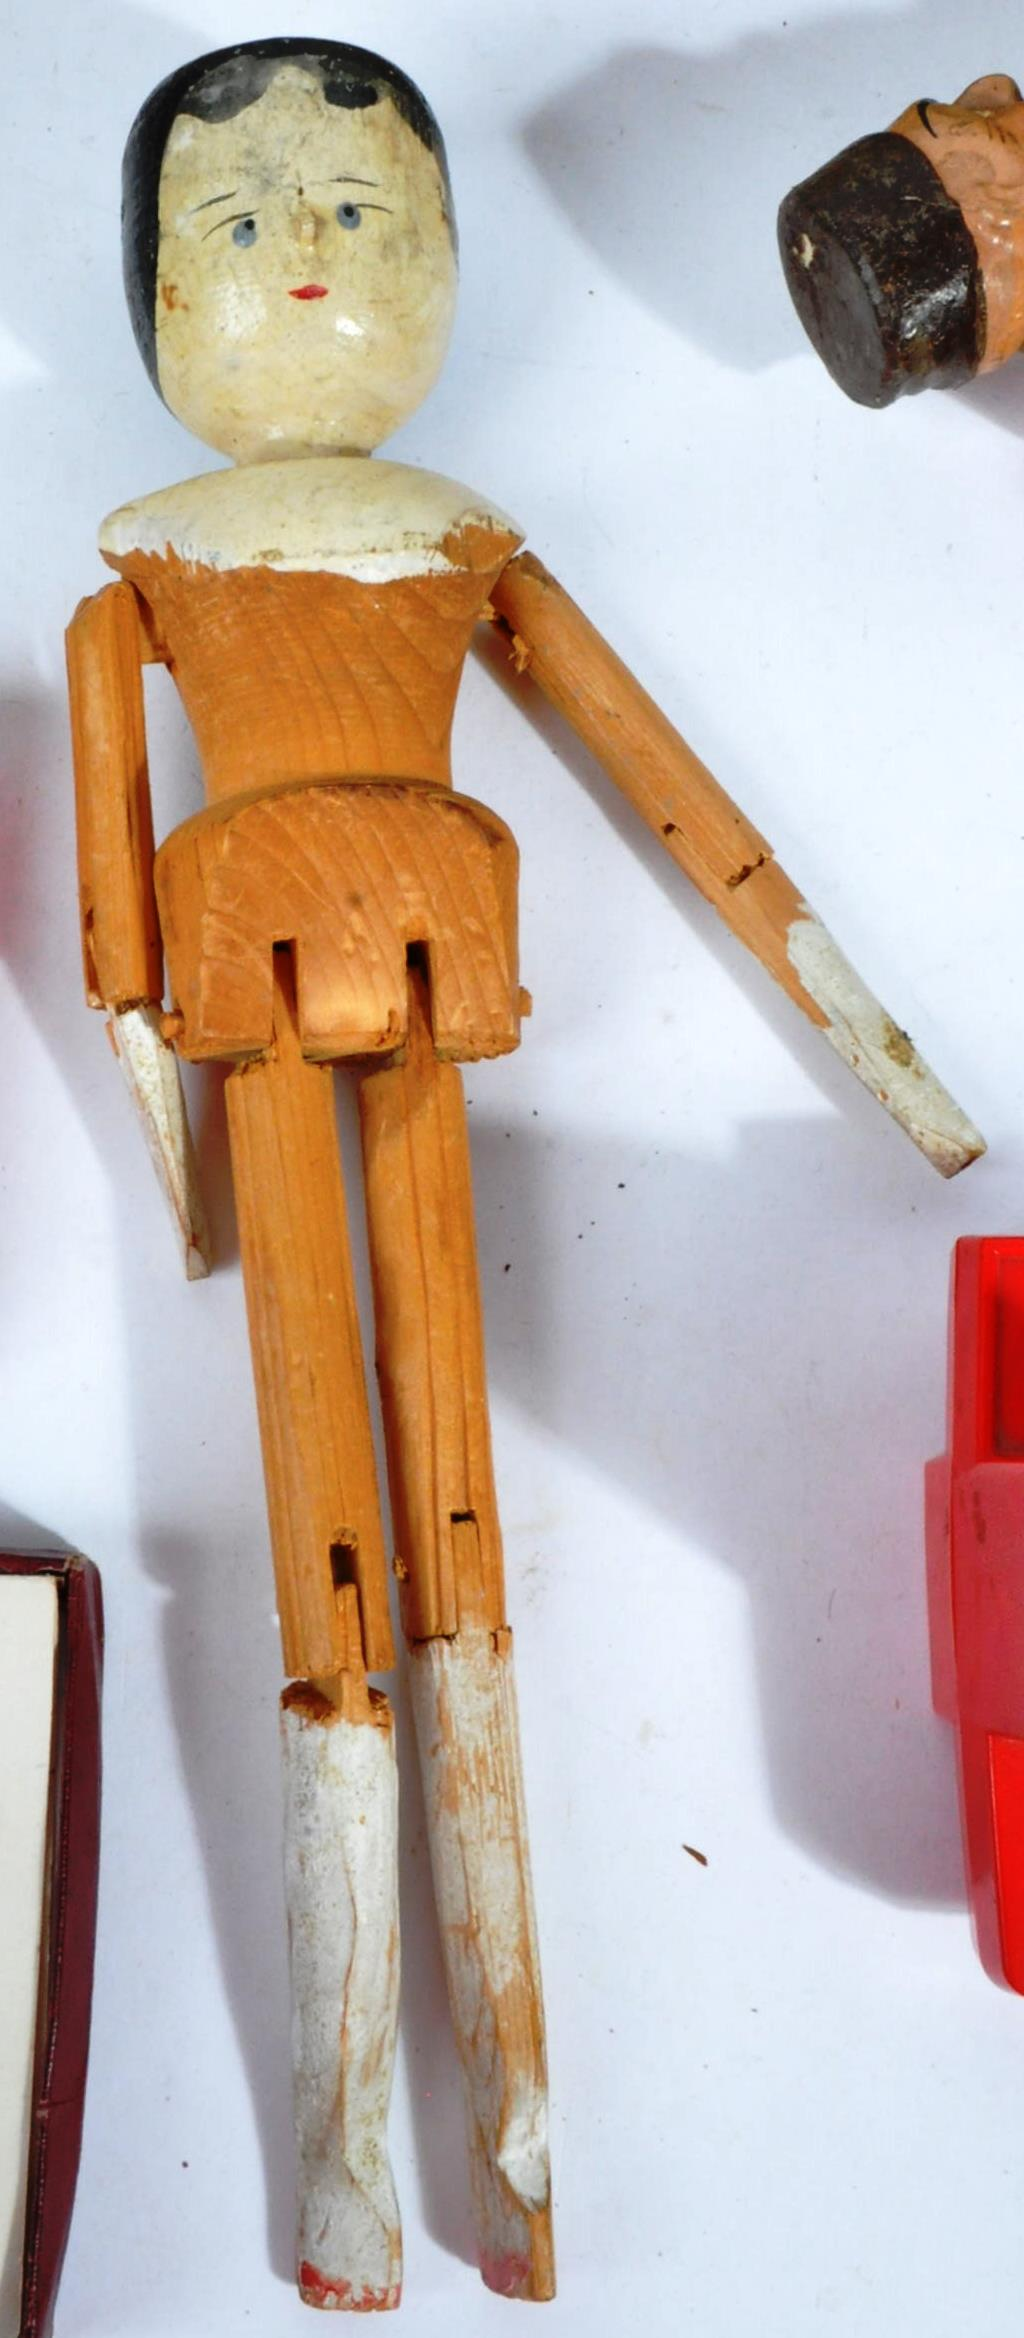 COLLECTION OF ANTIQUE TOYS - DUTCH DOLL, WOODEN TOYS ETC - Image 9 of 12